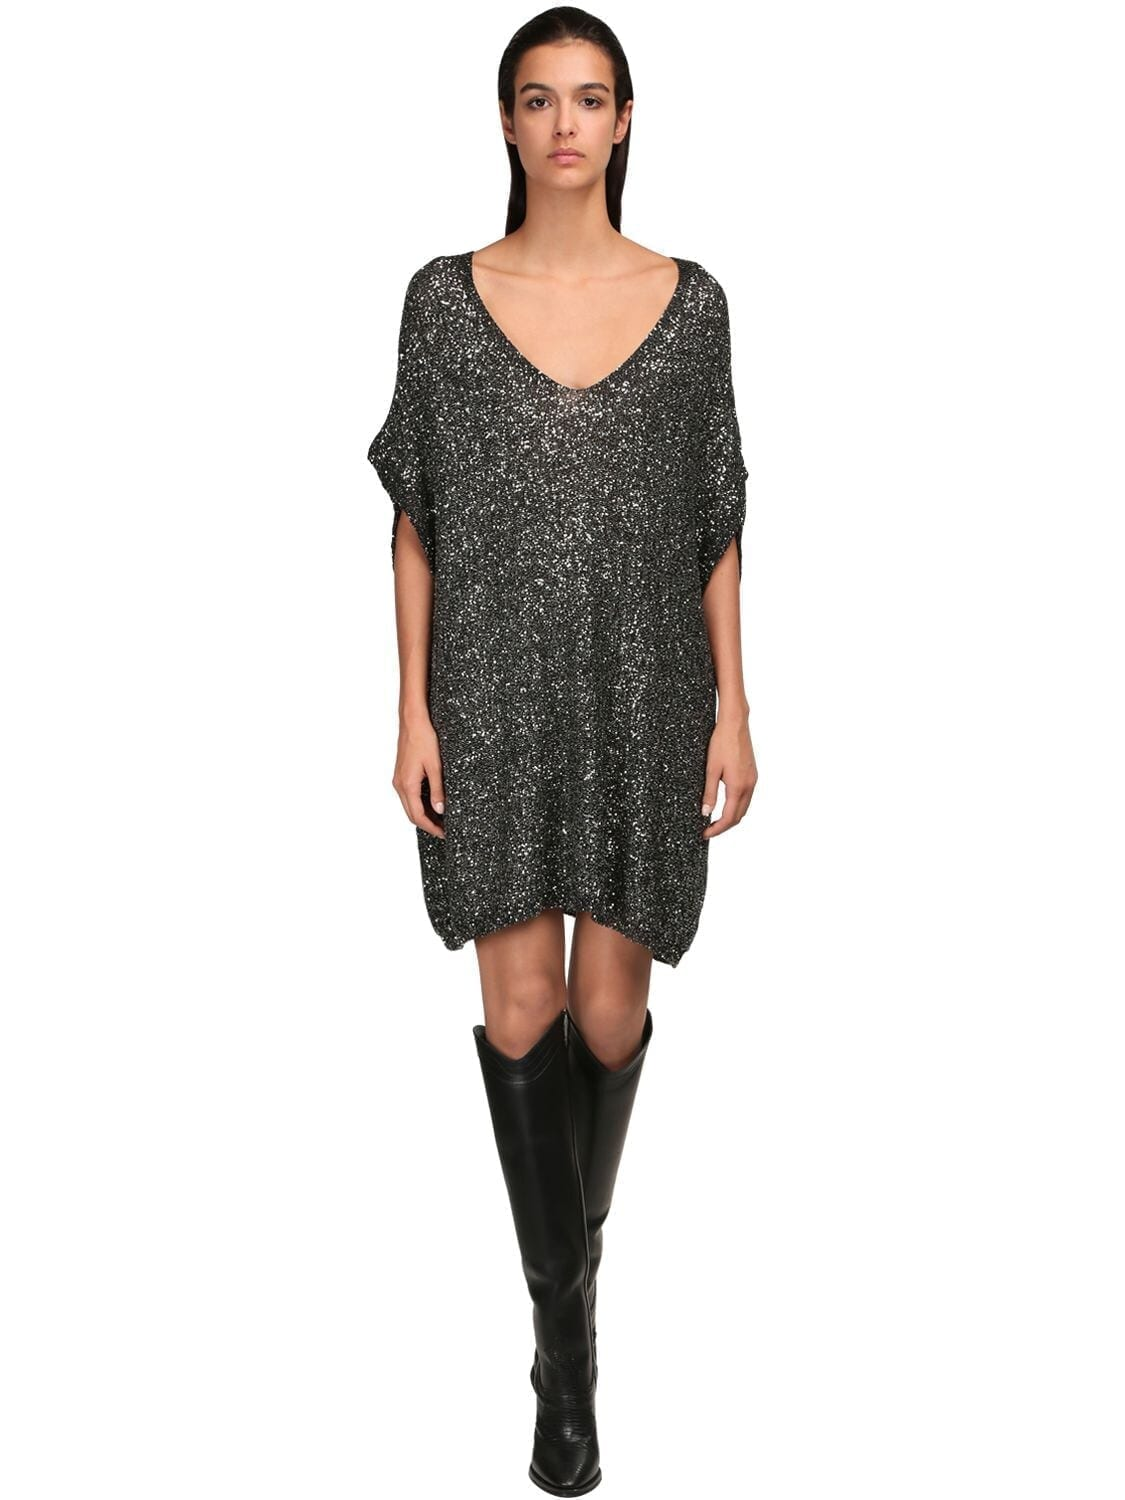 SAINT LAURENT Sequined Knit Mesh Dress